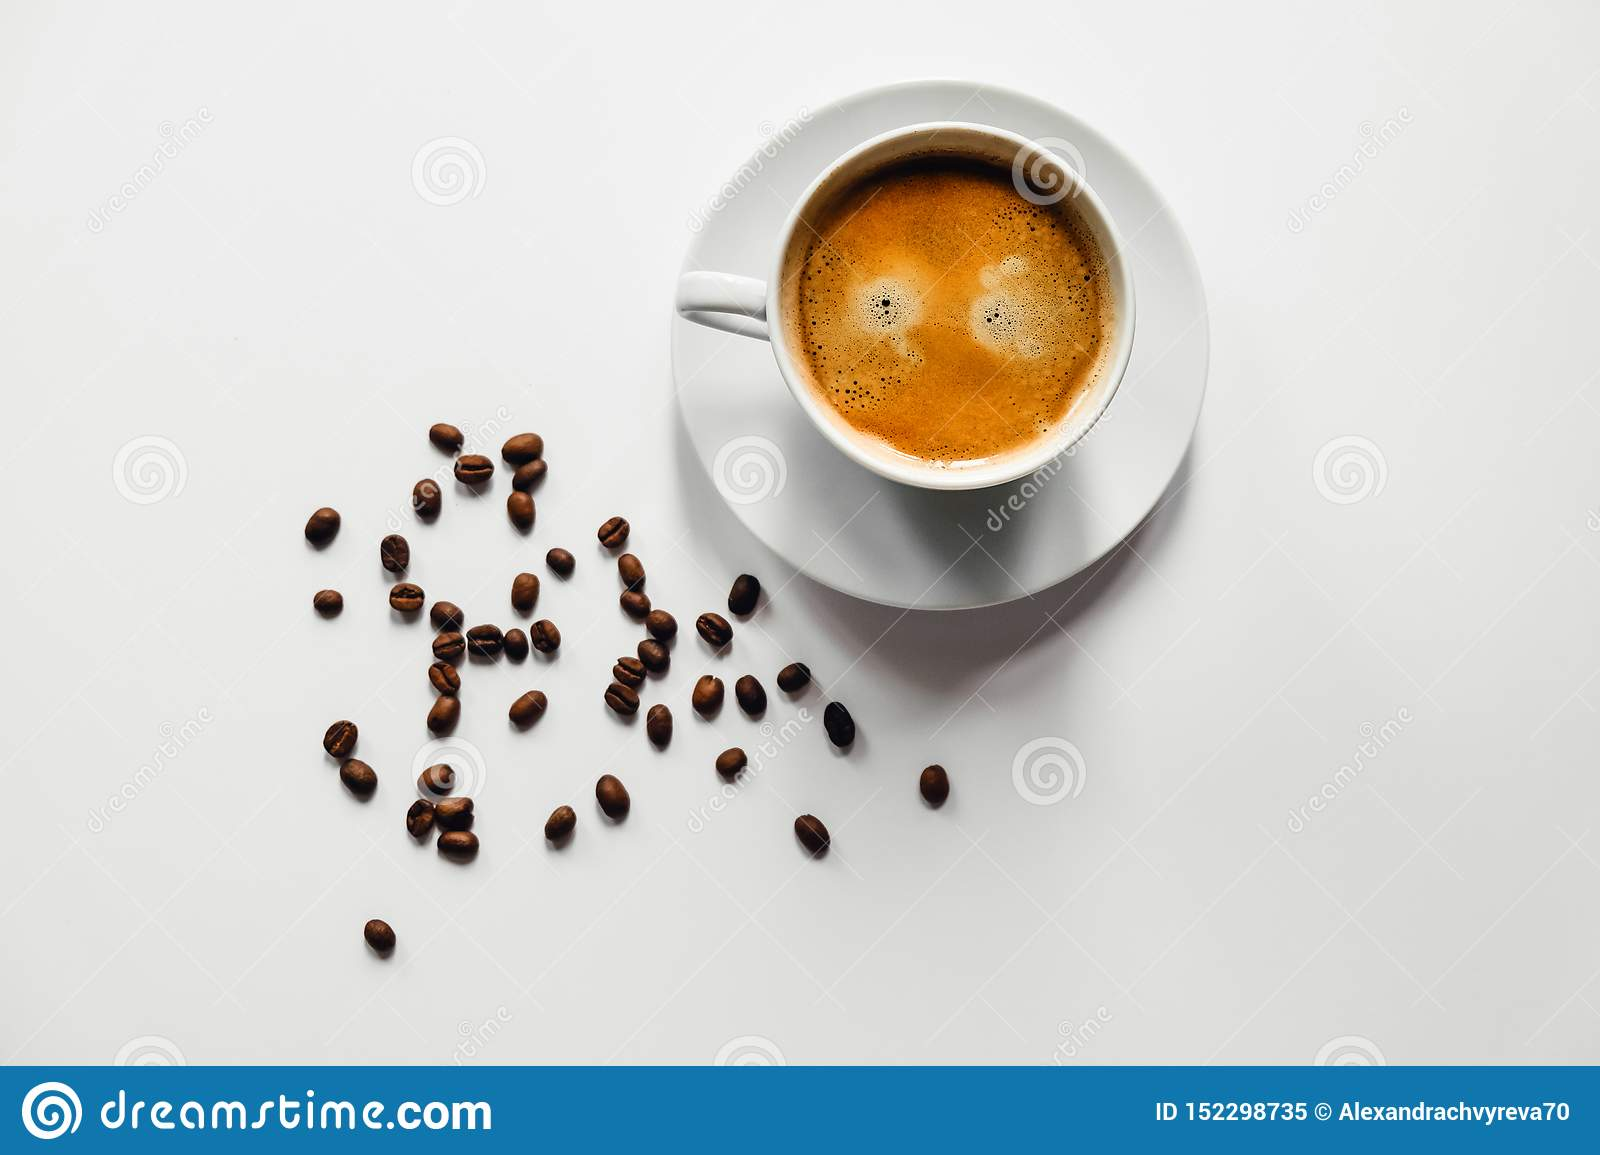 Tasty cup of coffee on white desk